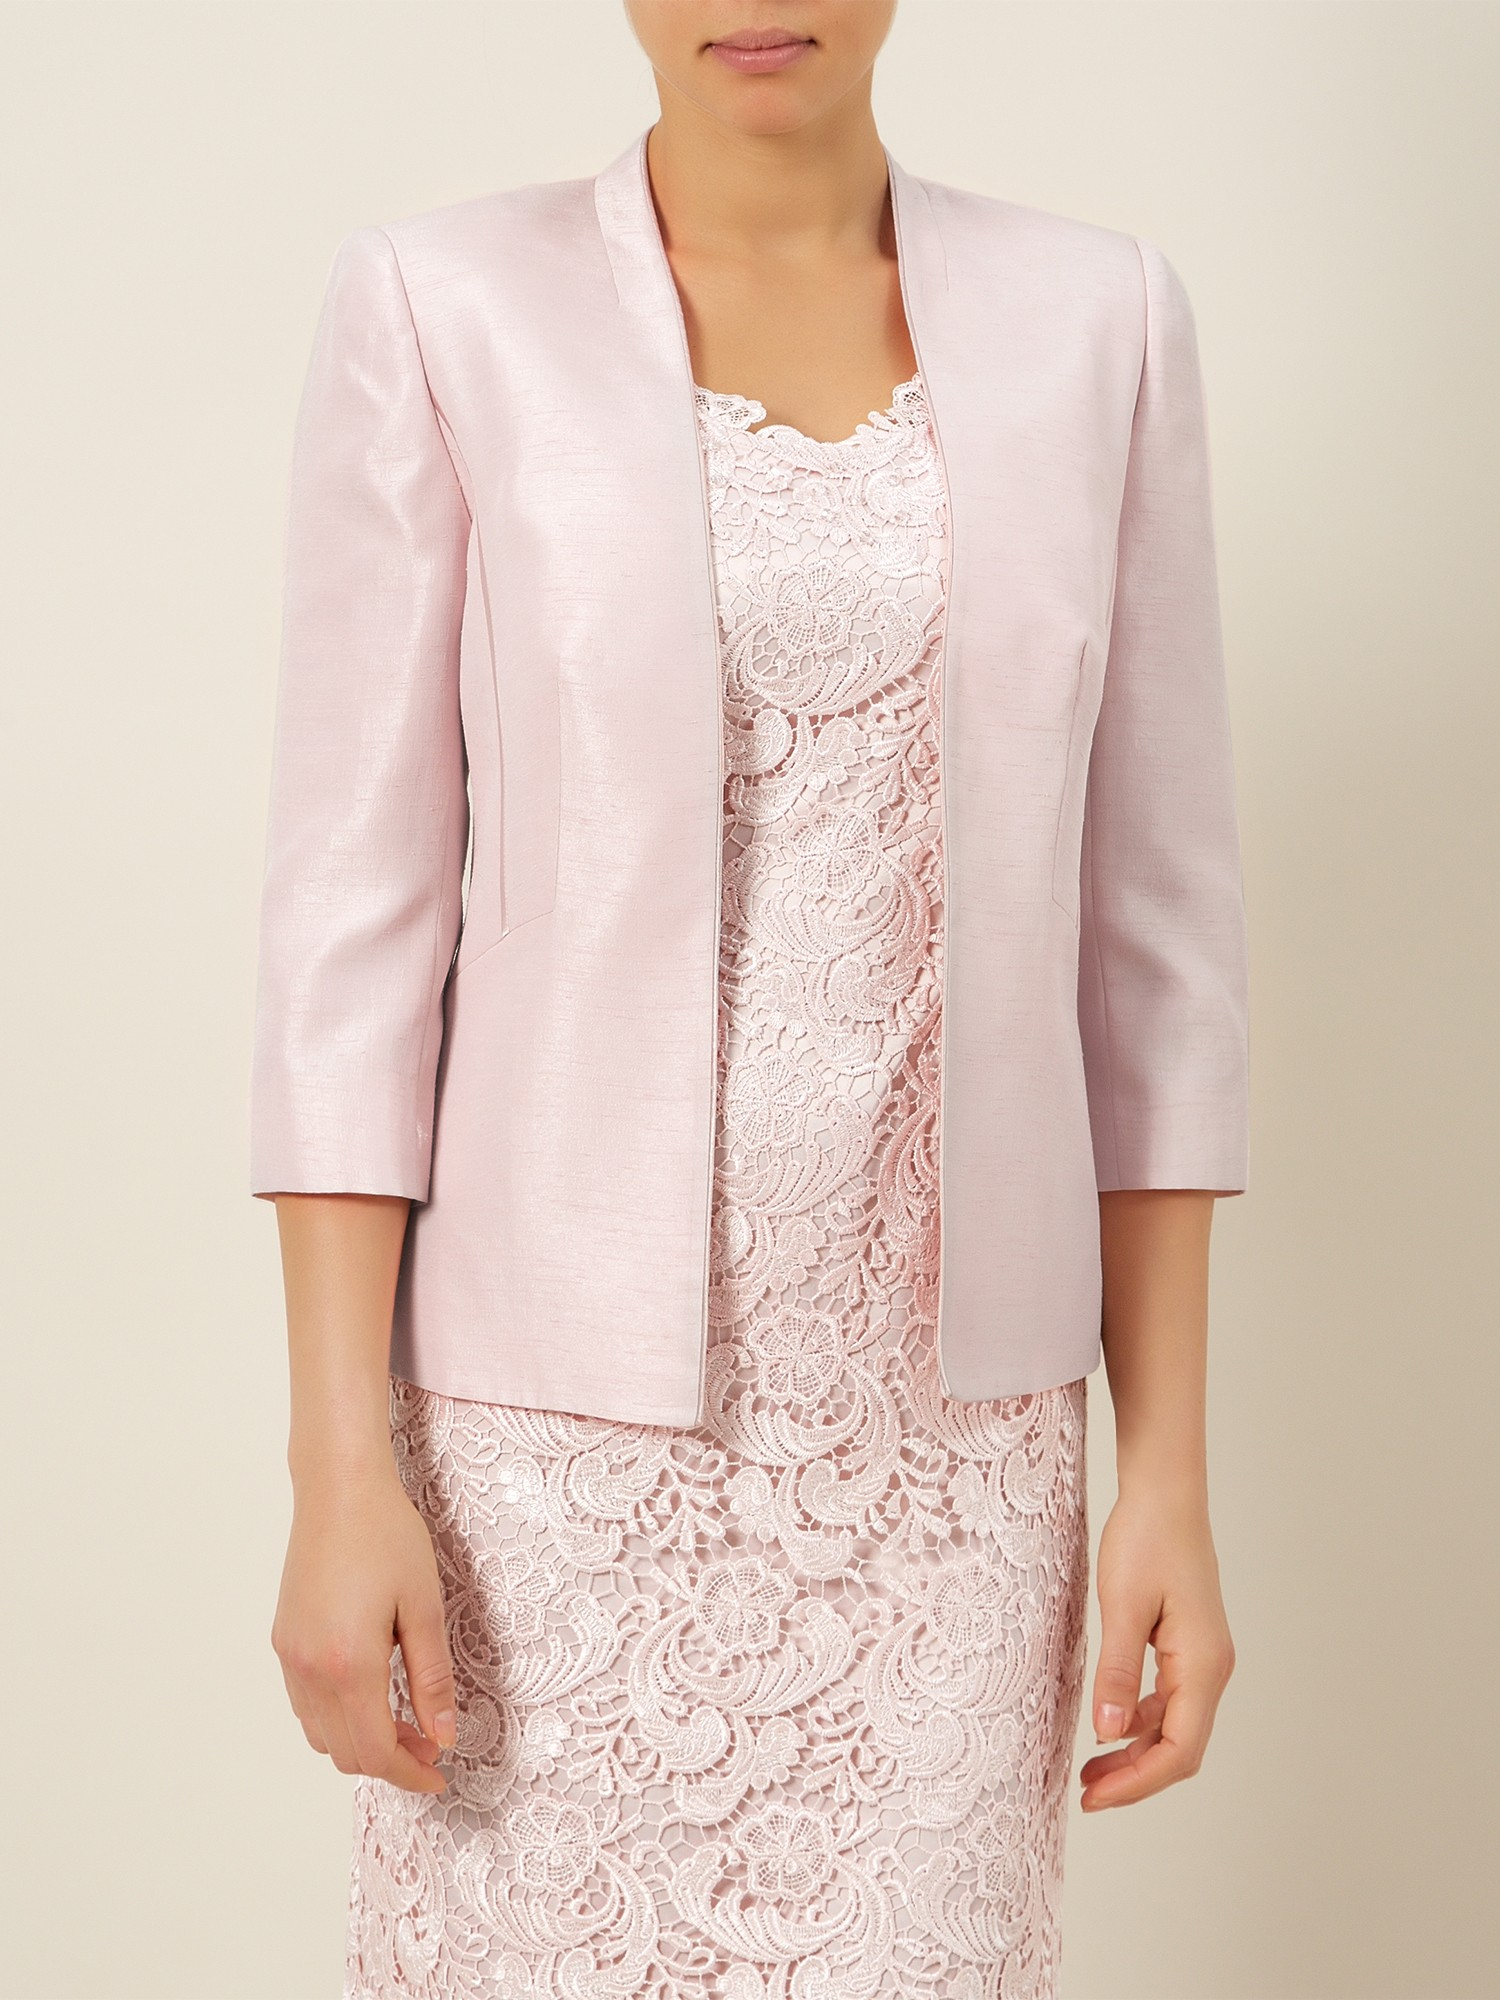 Jacques Vert Edge To Edge Jacket In Pink Lyst